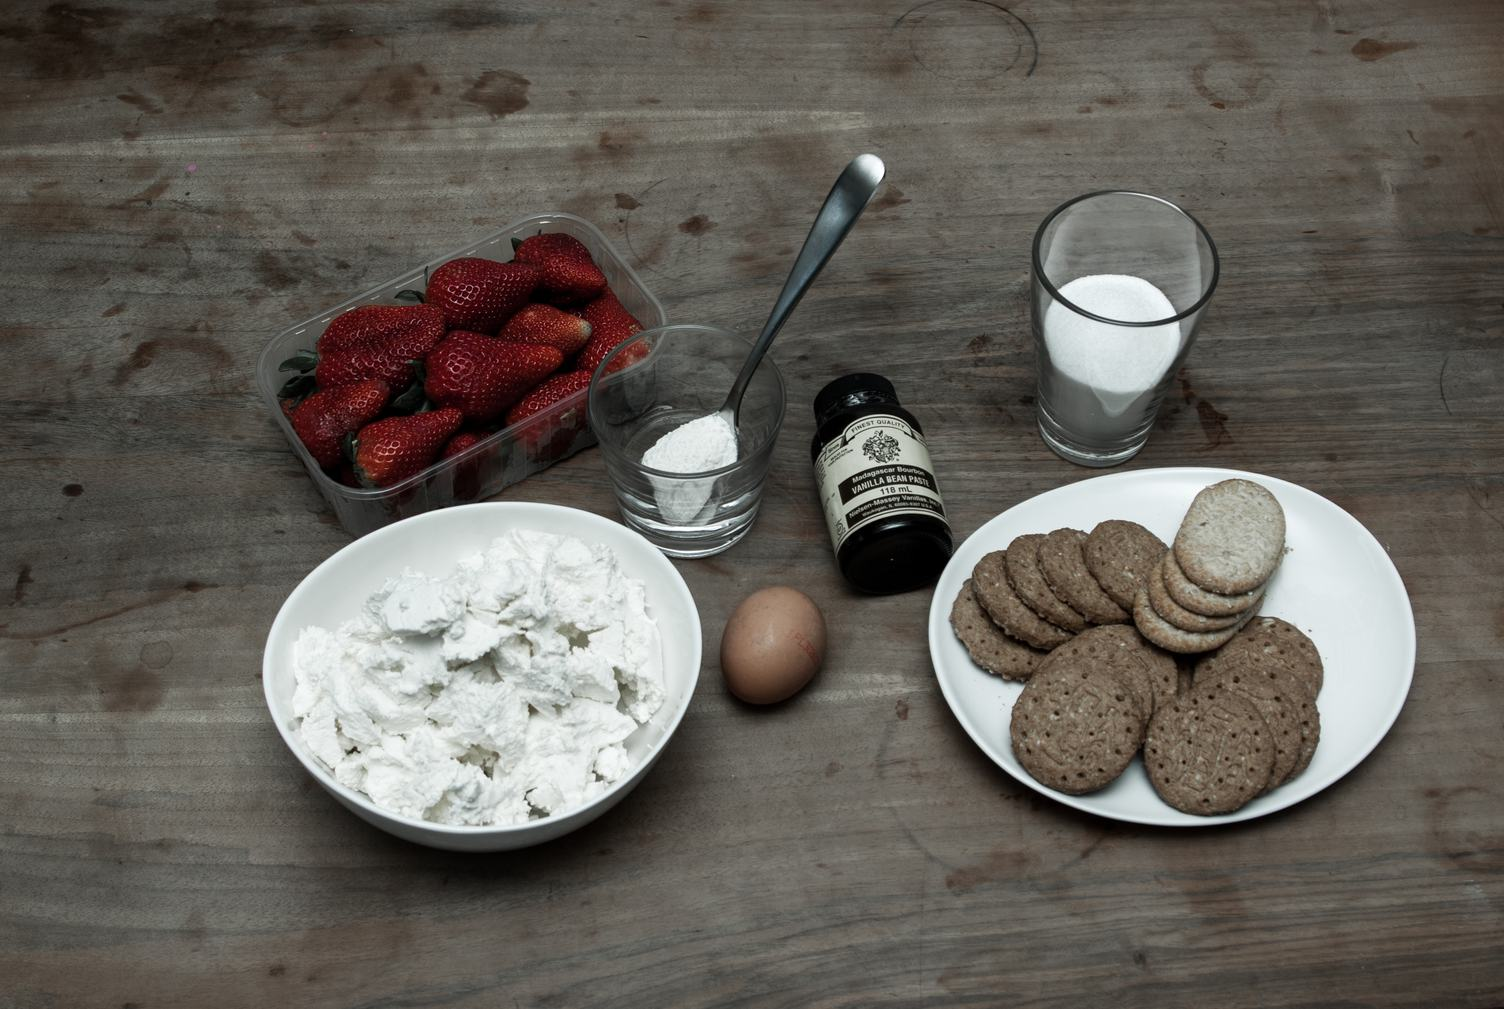 Ingredients for Homemade Cheesecake with Strawberries